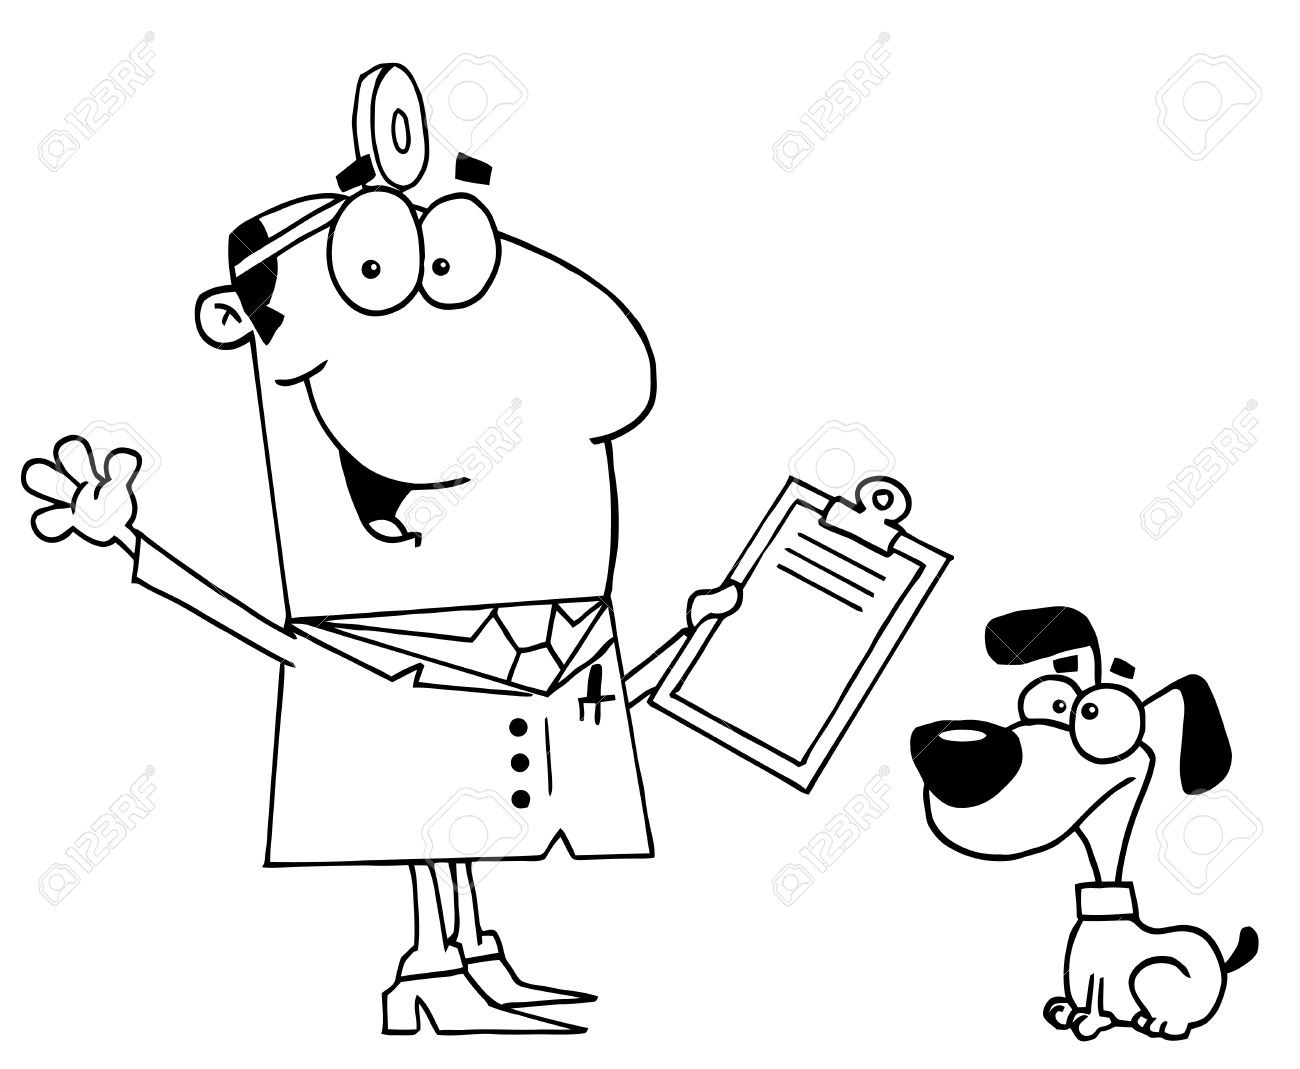 Black and white clipart vet picture royalty free library Veterinarian Clipart Black And White | Clipart picture royalty free library